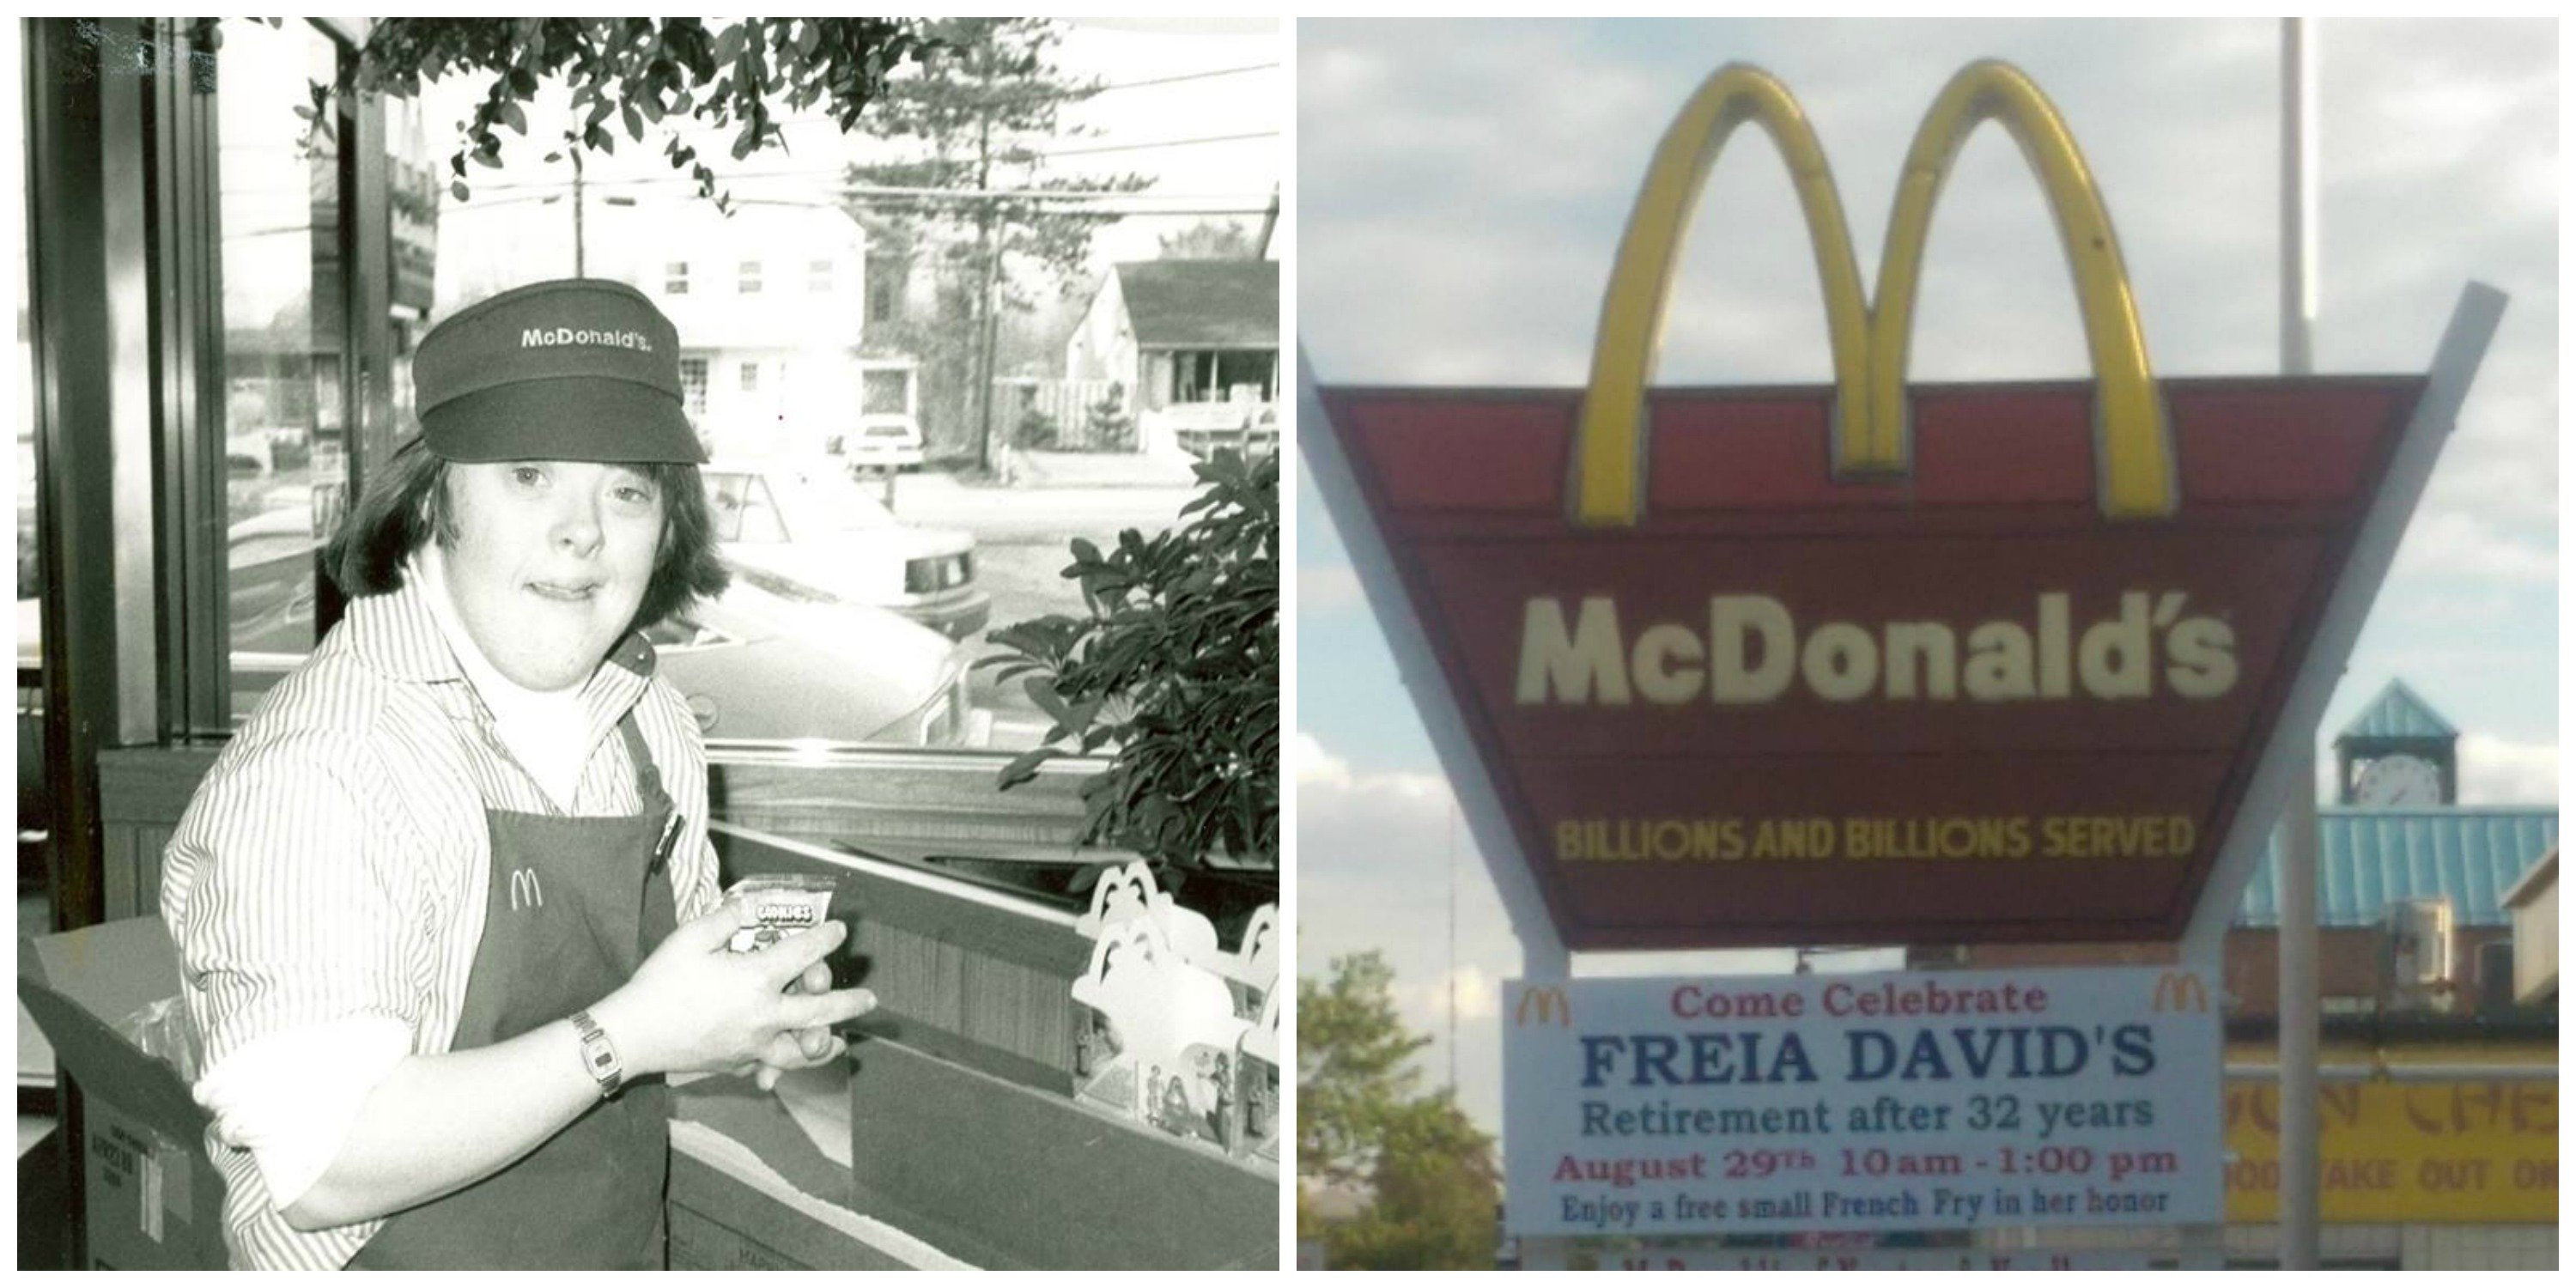 freia thumb.jpg?resize=300,169 - After 32 Years, A Devoted McDonald's Employee Gets A Beautiful Send-Off